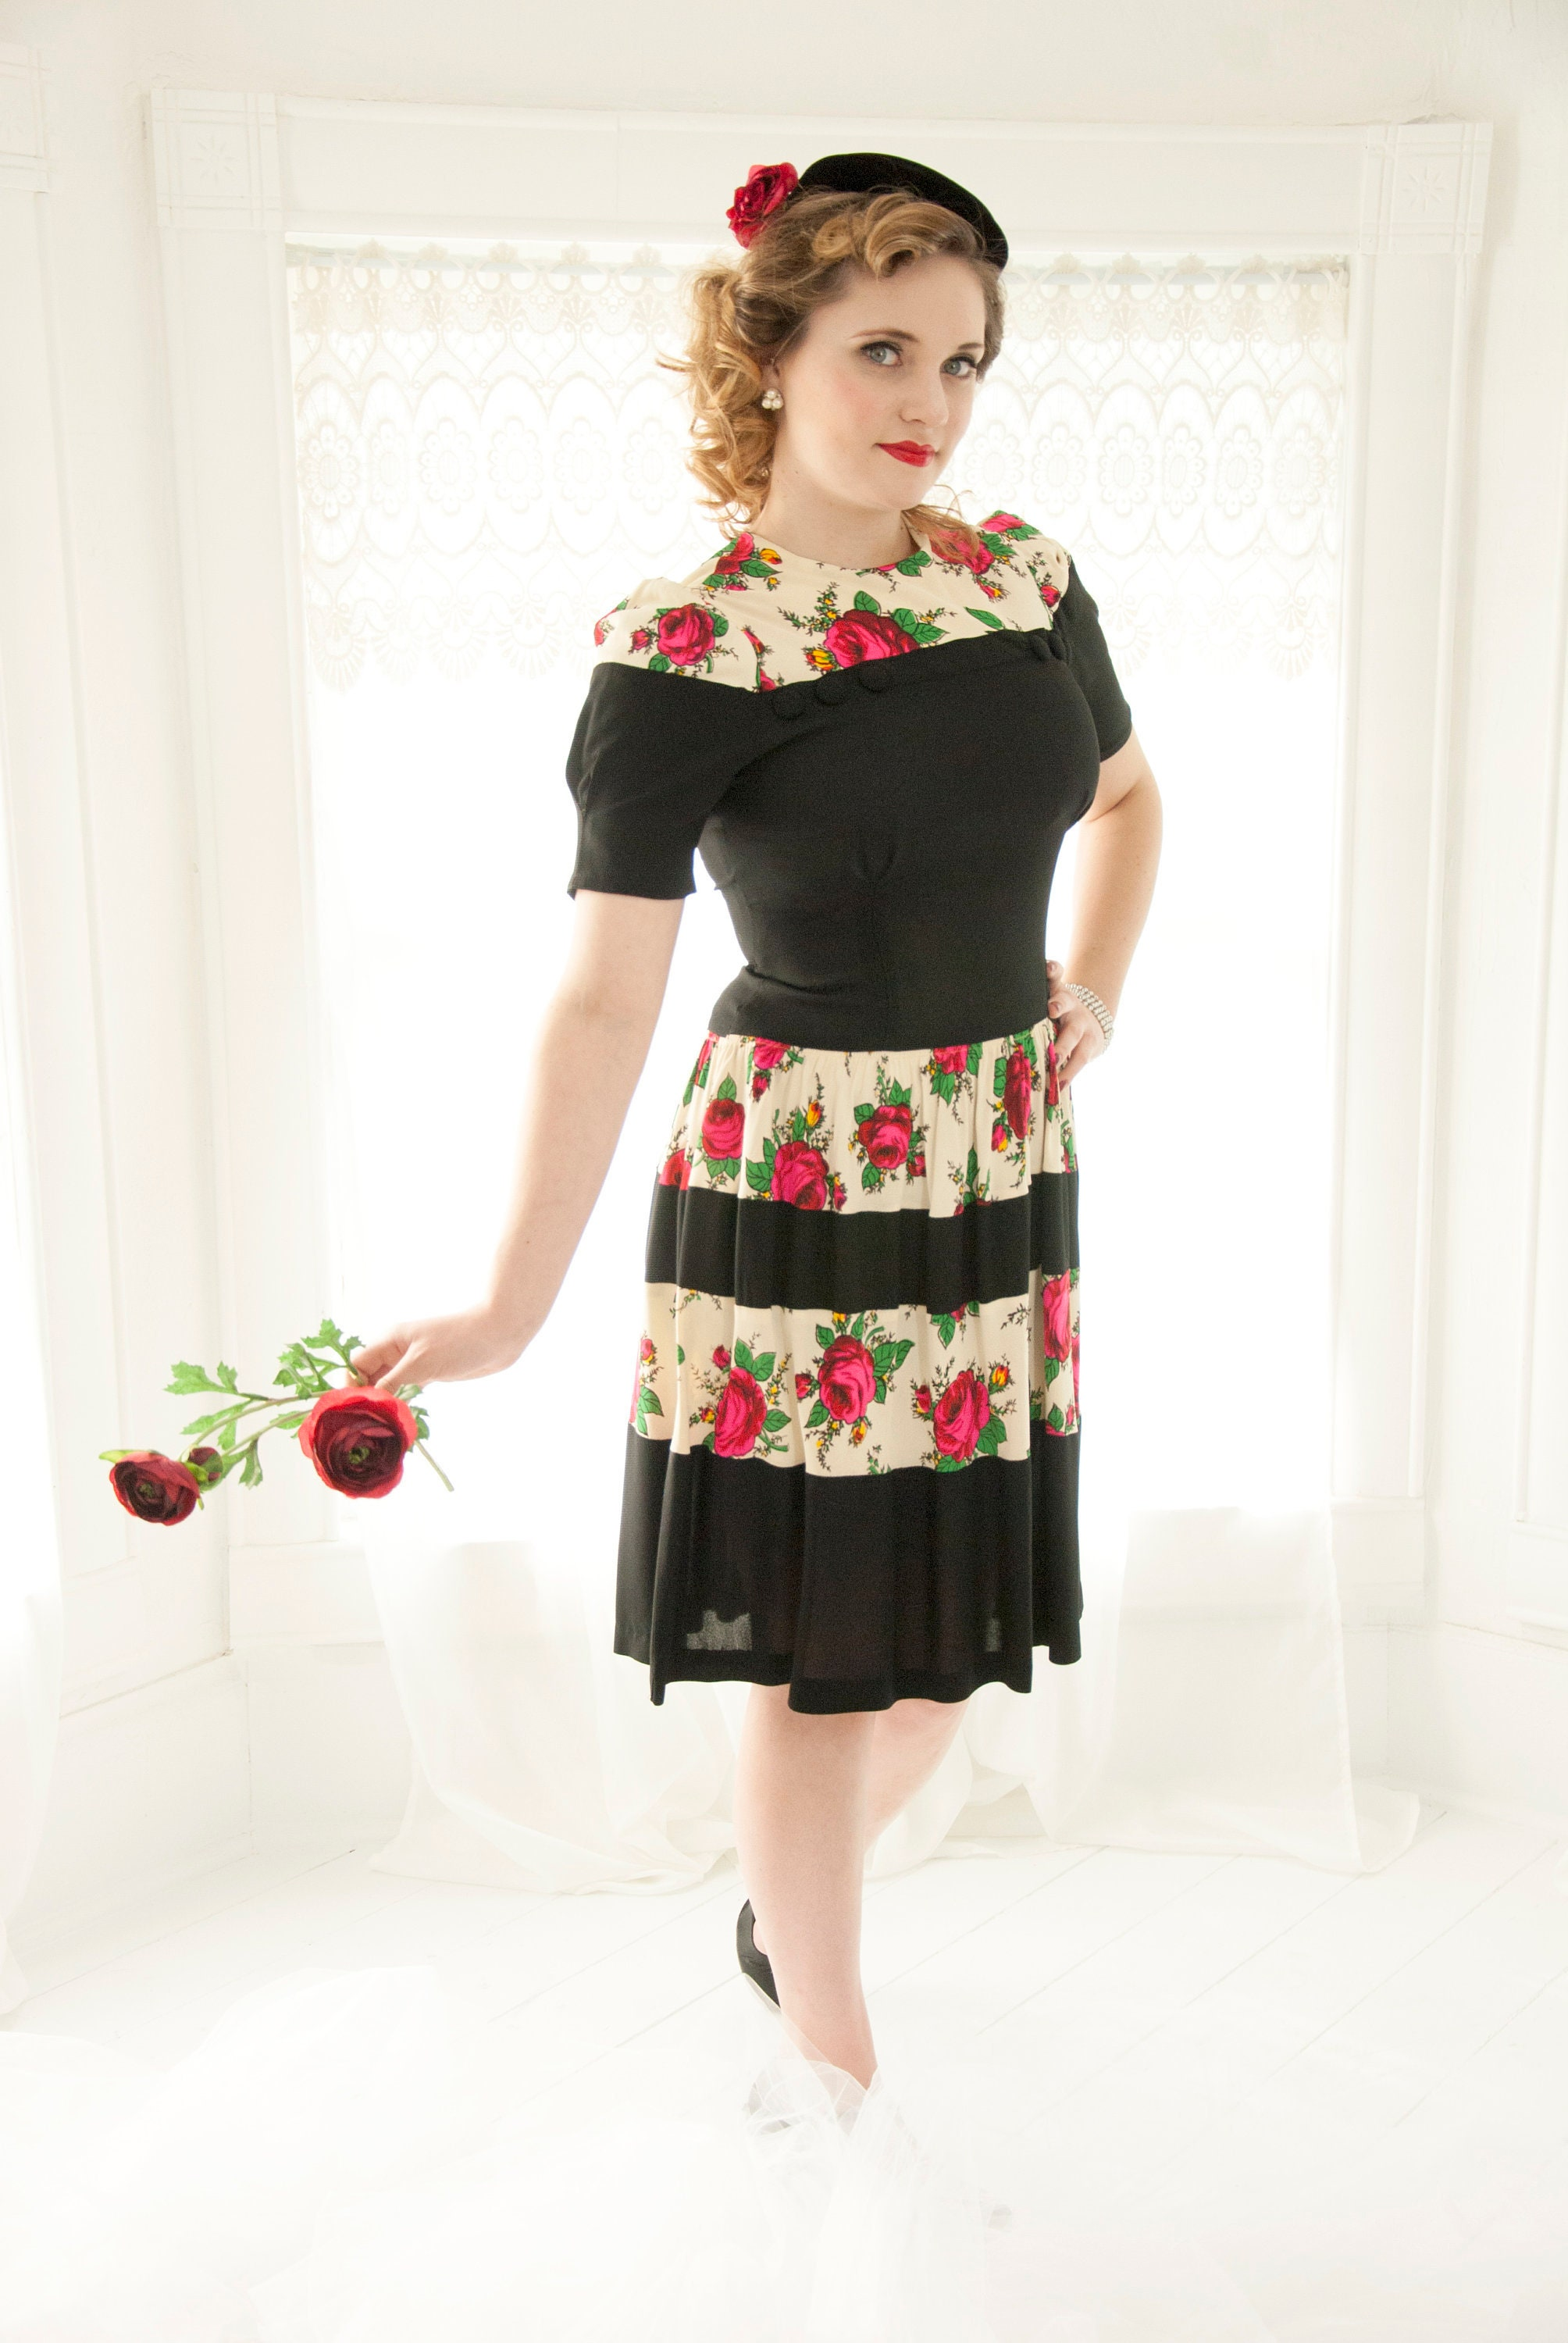 Vintage 1940s Red Roses Dress Black White Stripes Pink Flowers